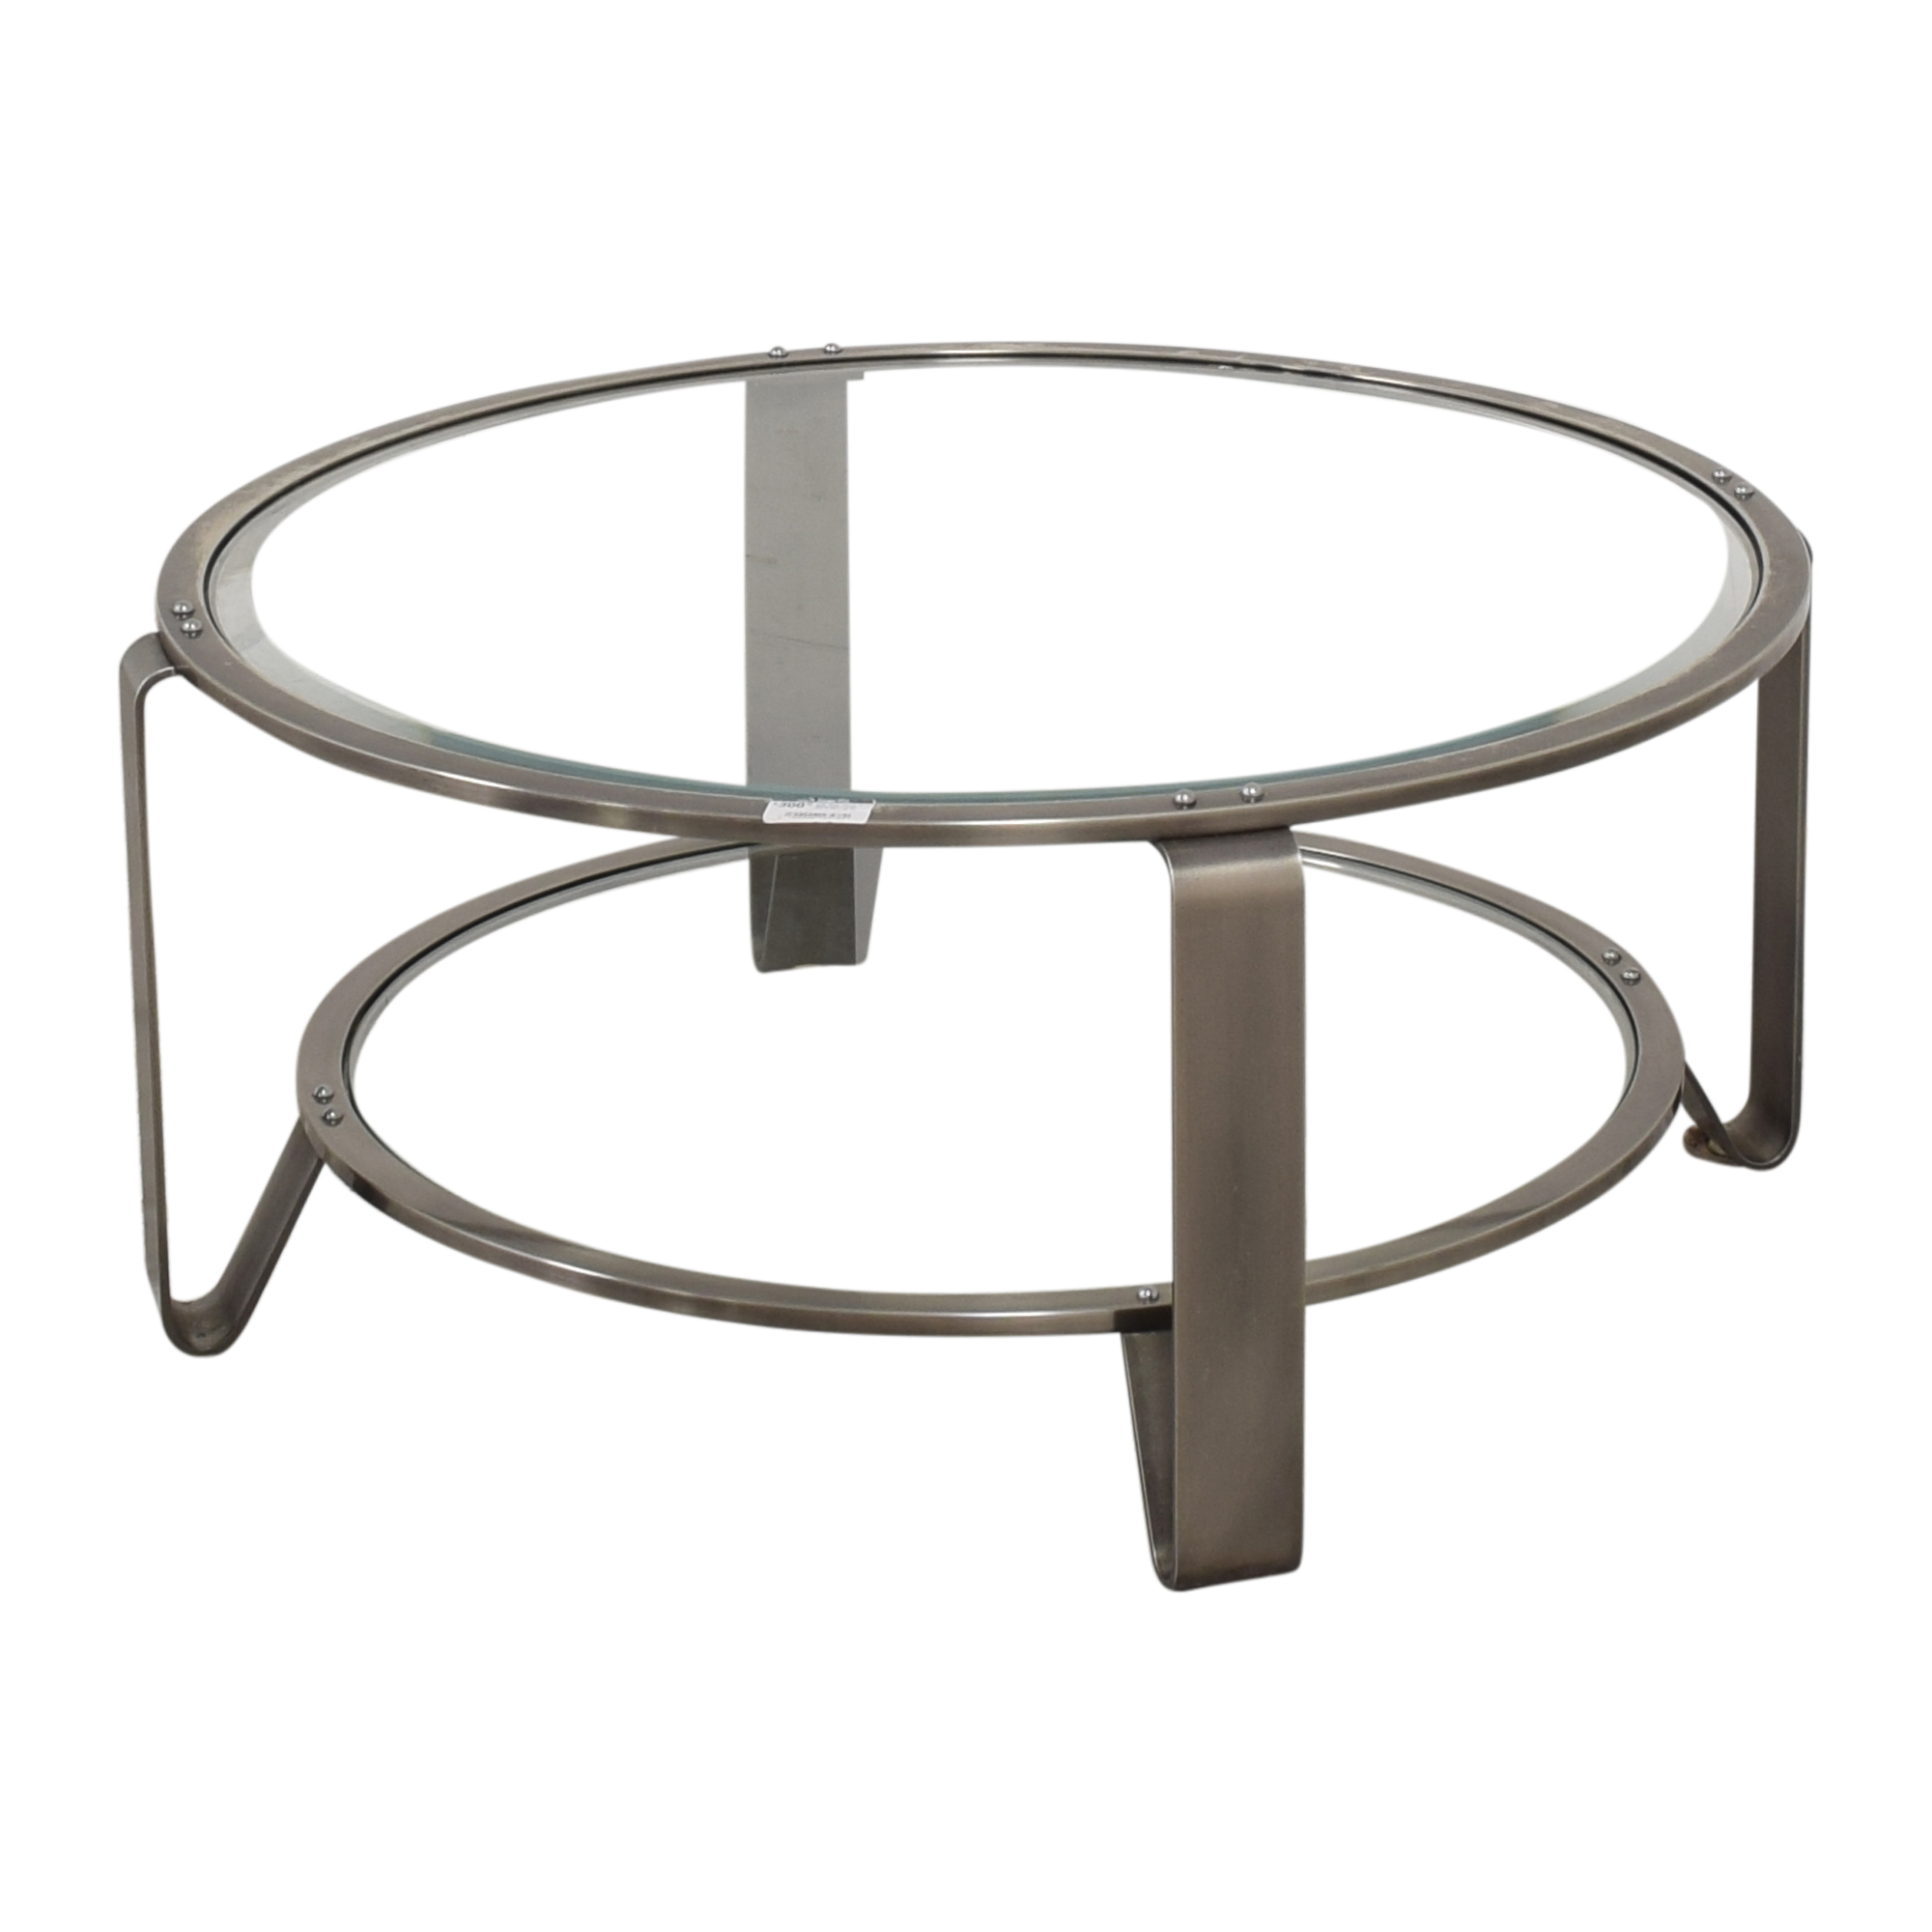 Two Shelf Round Coffee Table for sale